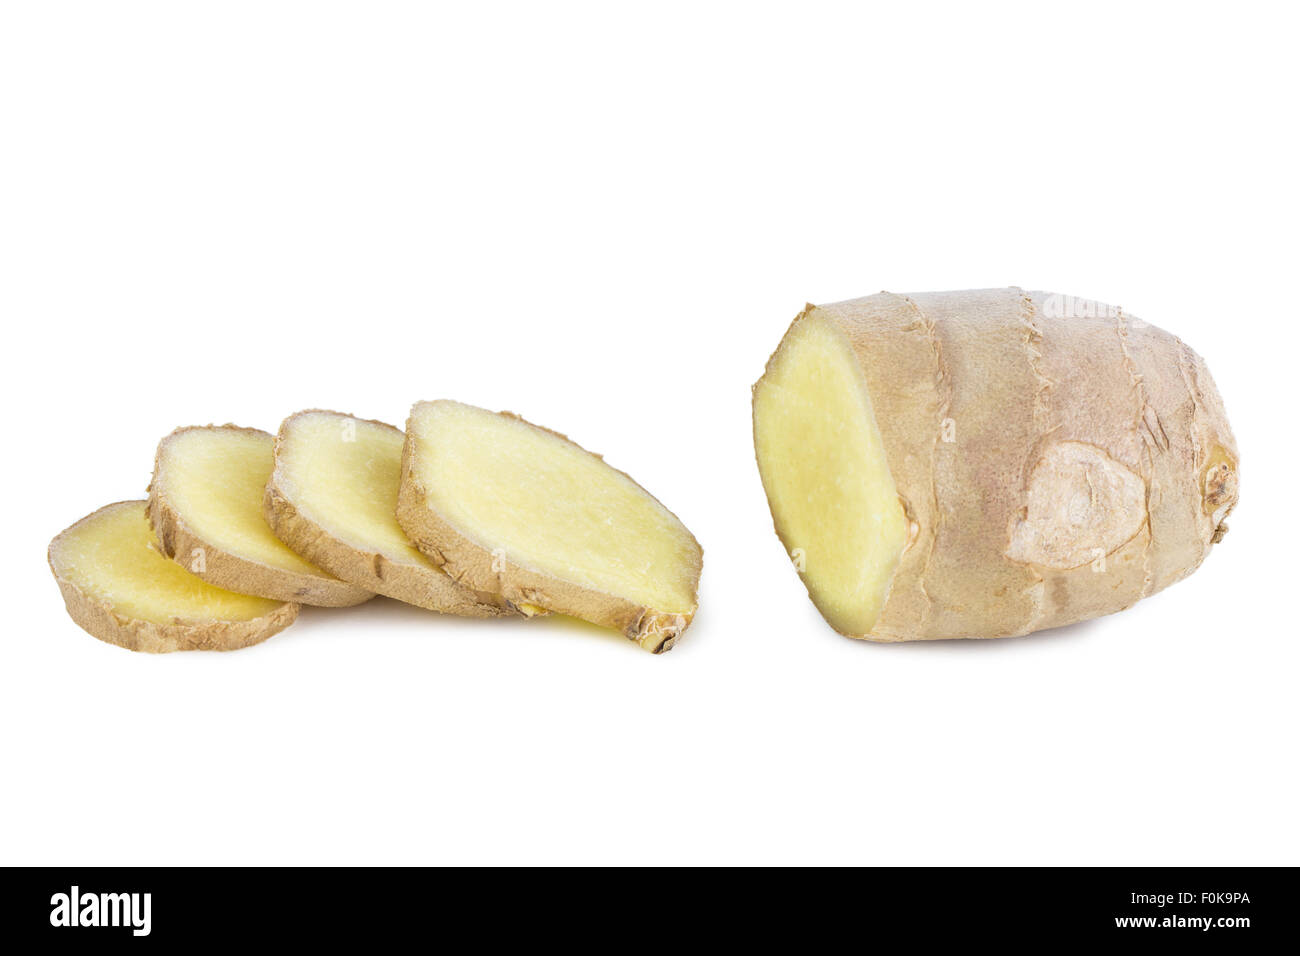 Close-up of piece and slices of fresh ginger root, isolated on white background. - Stock Image